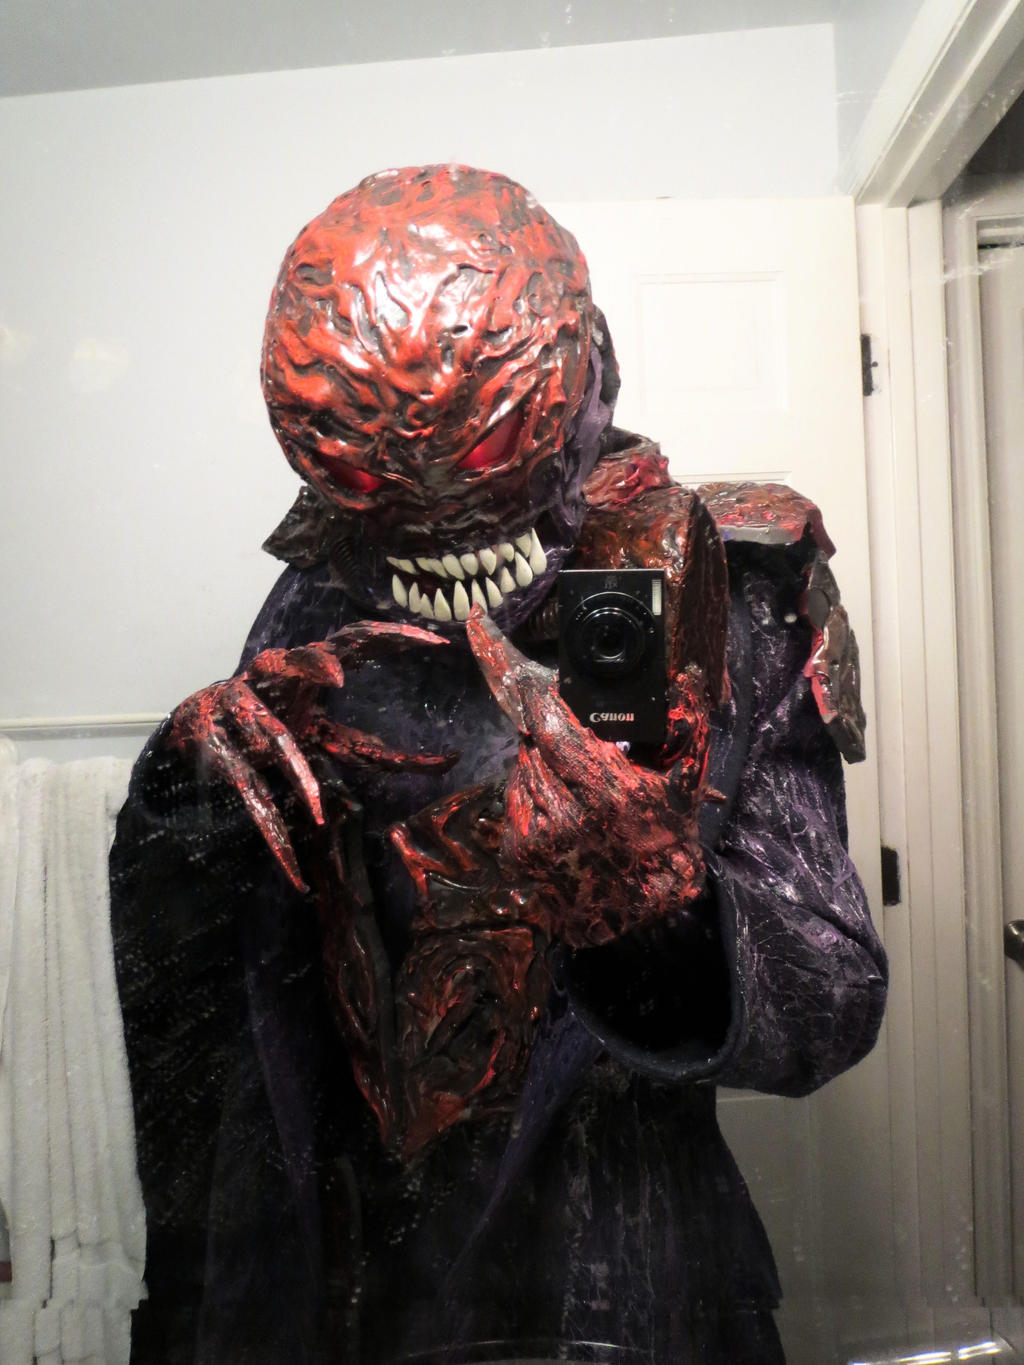 SUPERIOR CARNAGE COSTUME by symbiote-x on DeviantArt